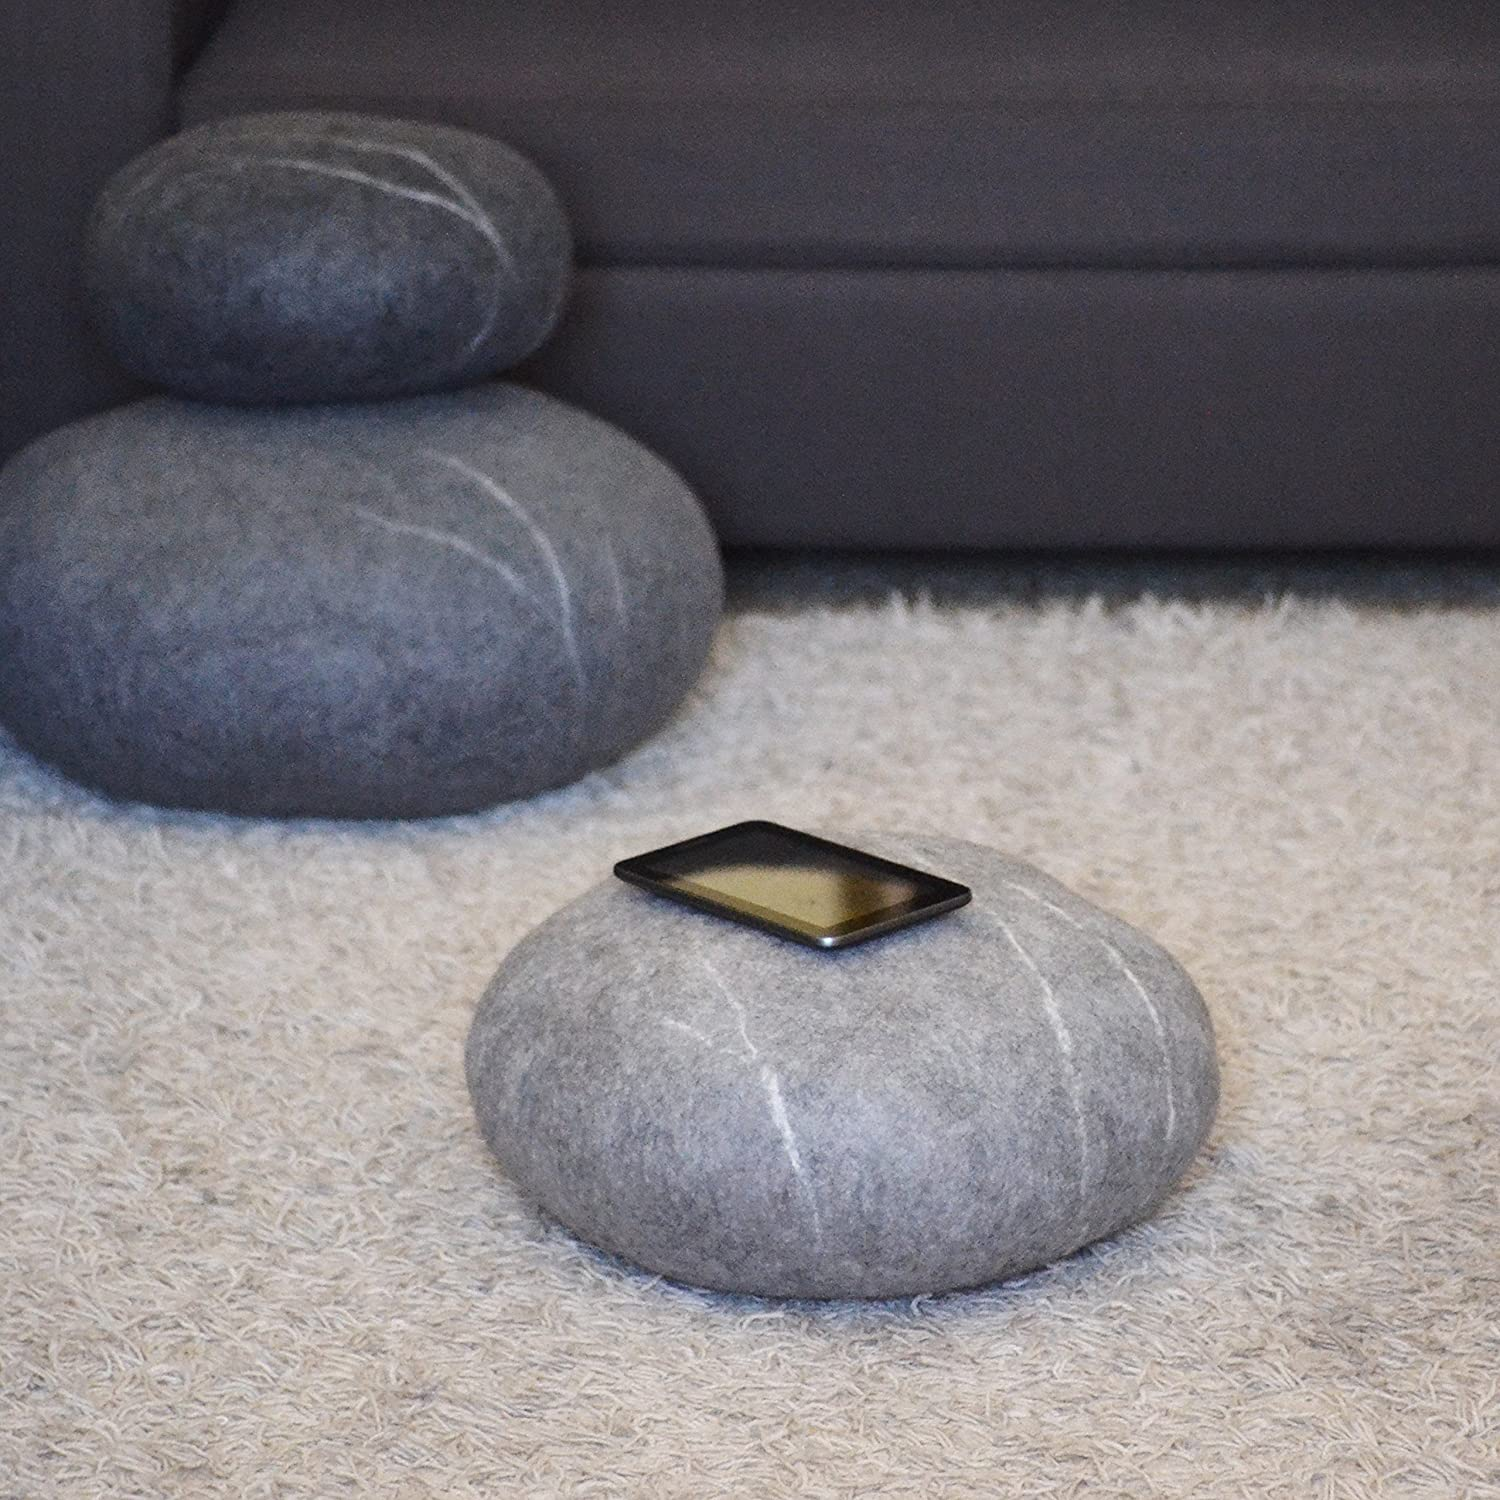 Floor Pillows Stones : Felted Wool Stones - Home Design